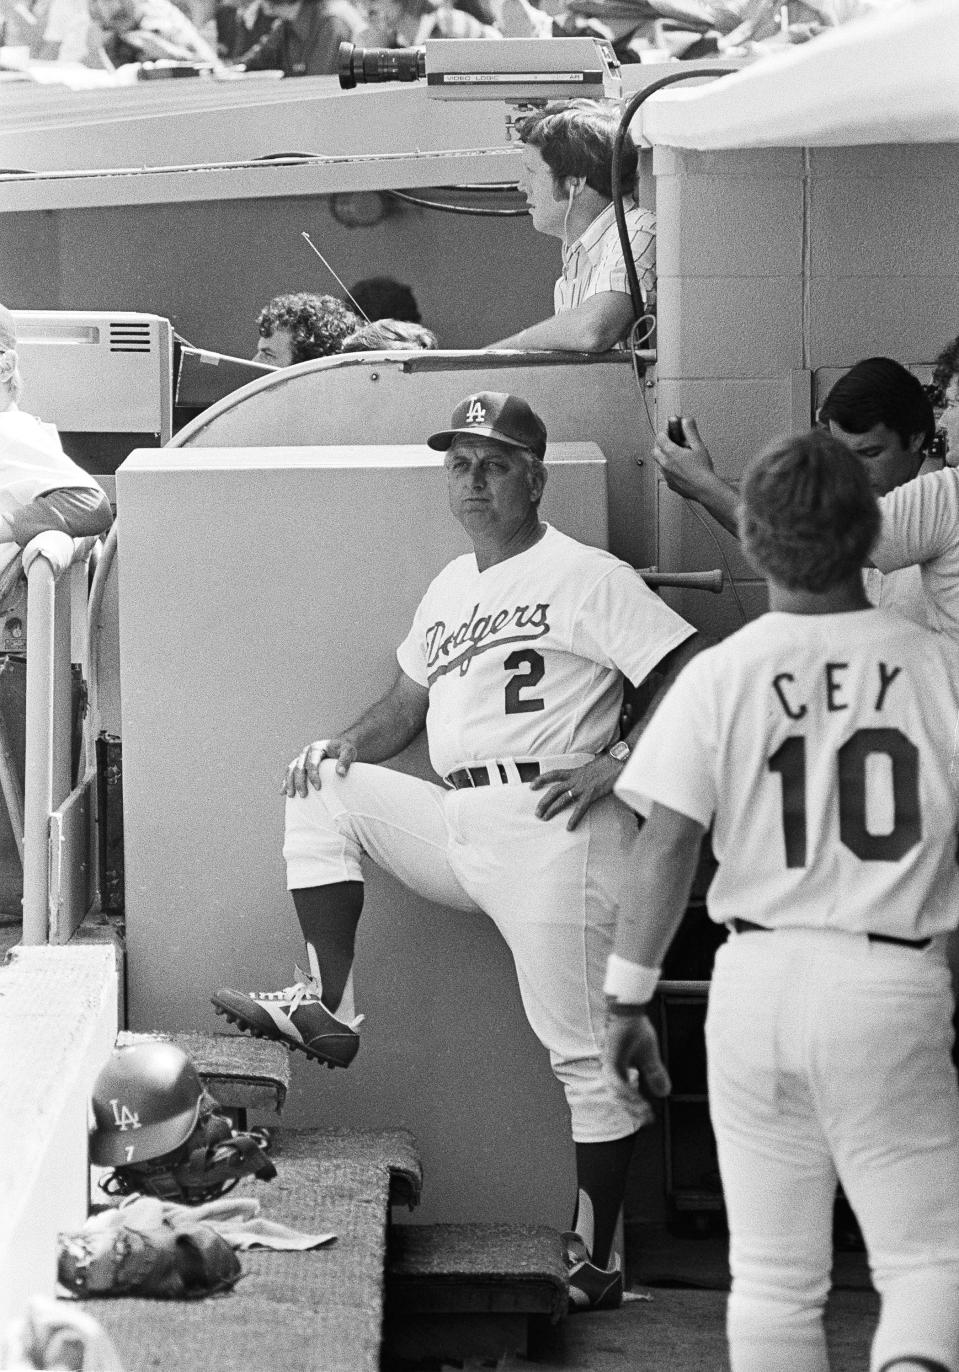 New manager Tommy Lasorda looks over his domain from the dugout as his Los Angeles Dodgers downed the San Francisco Giants in Los Angeles on Thursday, April 8, 1977. It was 5-1. It was Lasorda's first game as a major league skipper. (AP Photo)